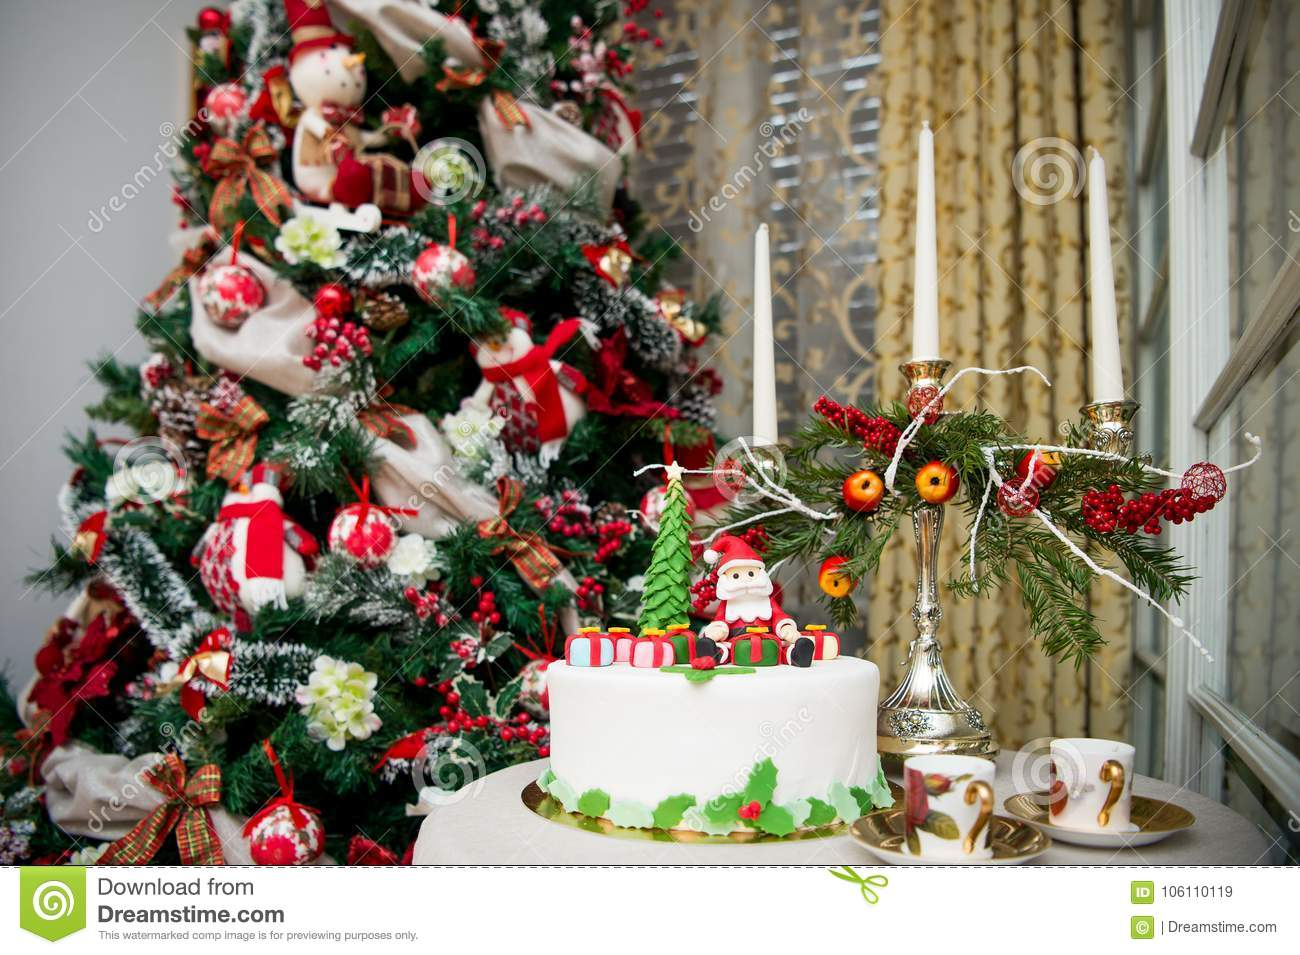 Christmas tree and a special cake